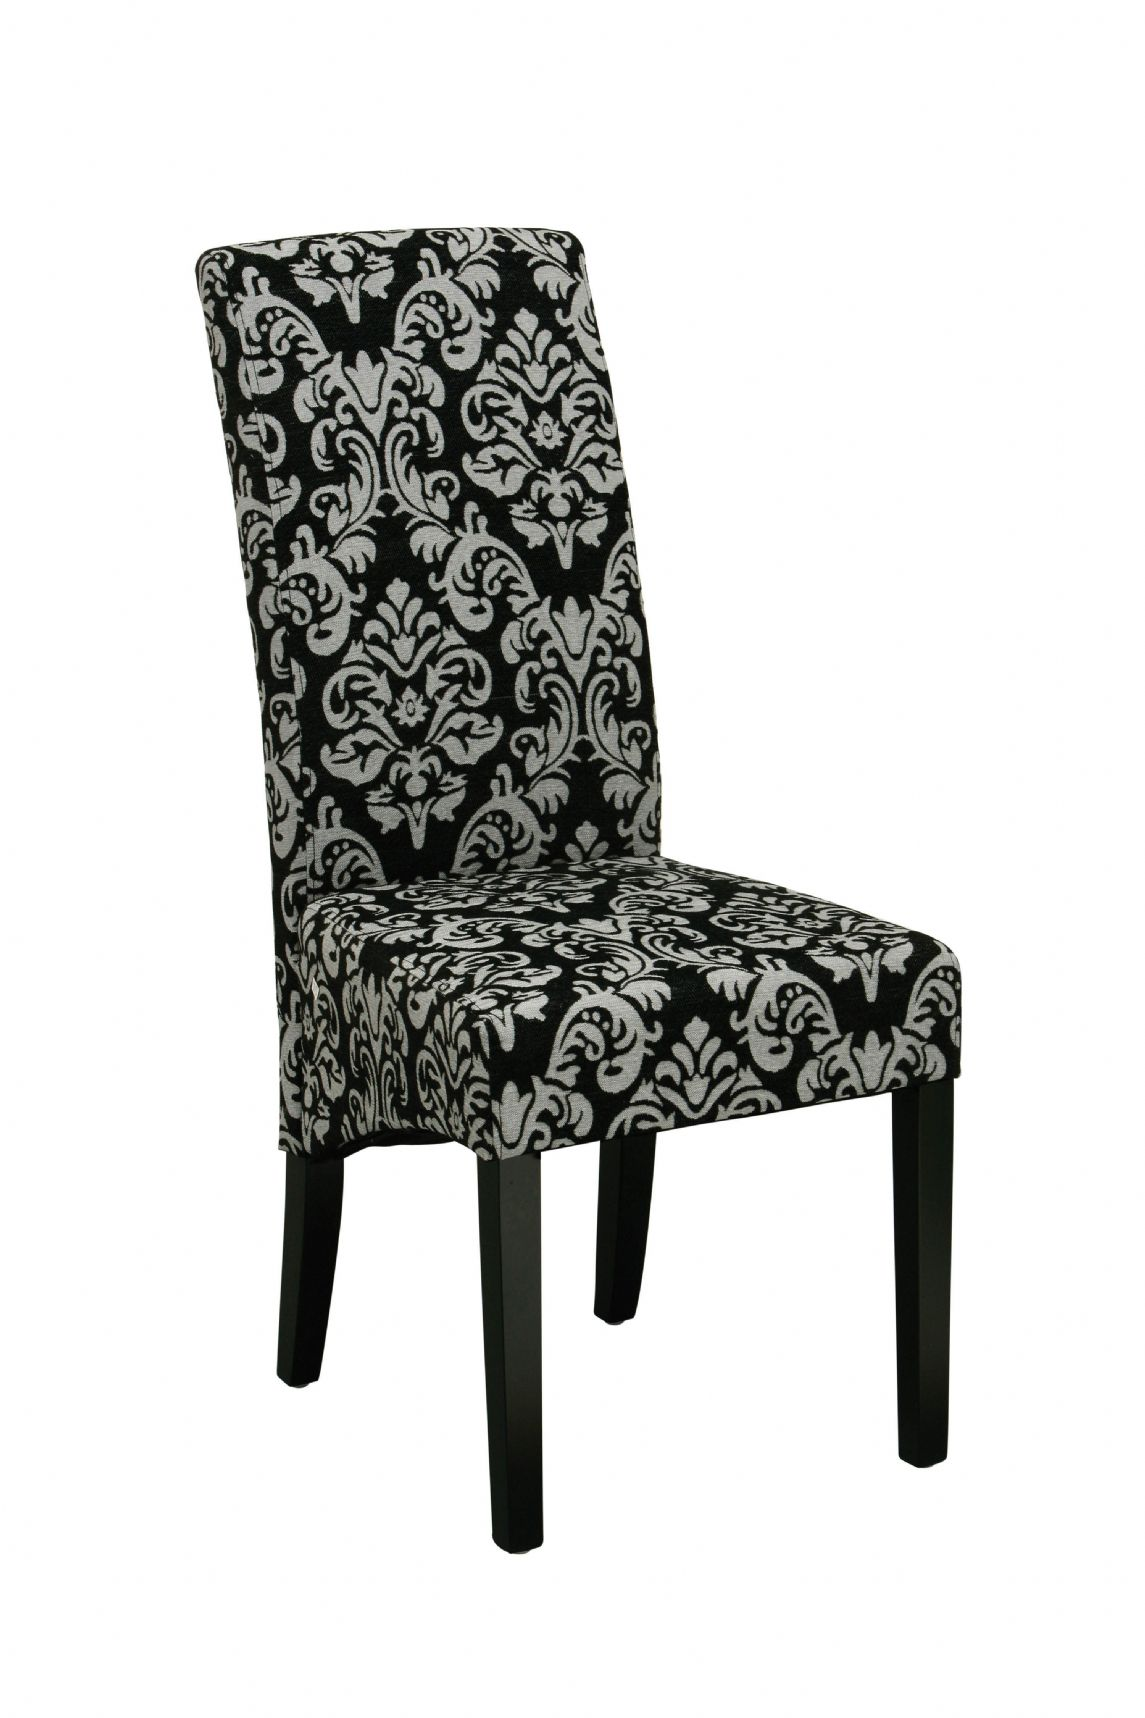 The Best 5 Fabric Chairs - FADS BlogFADS Blog